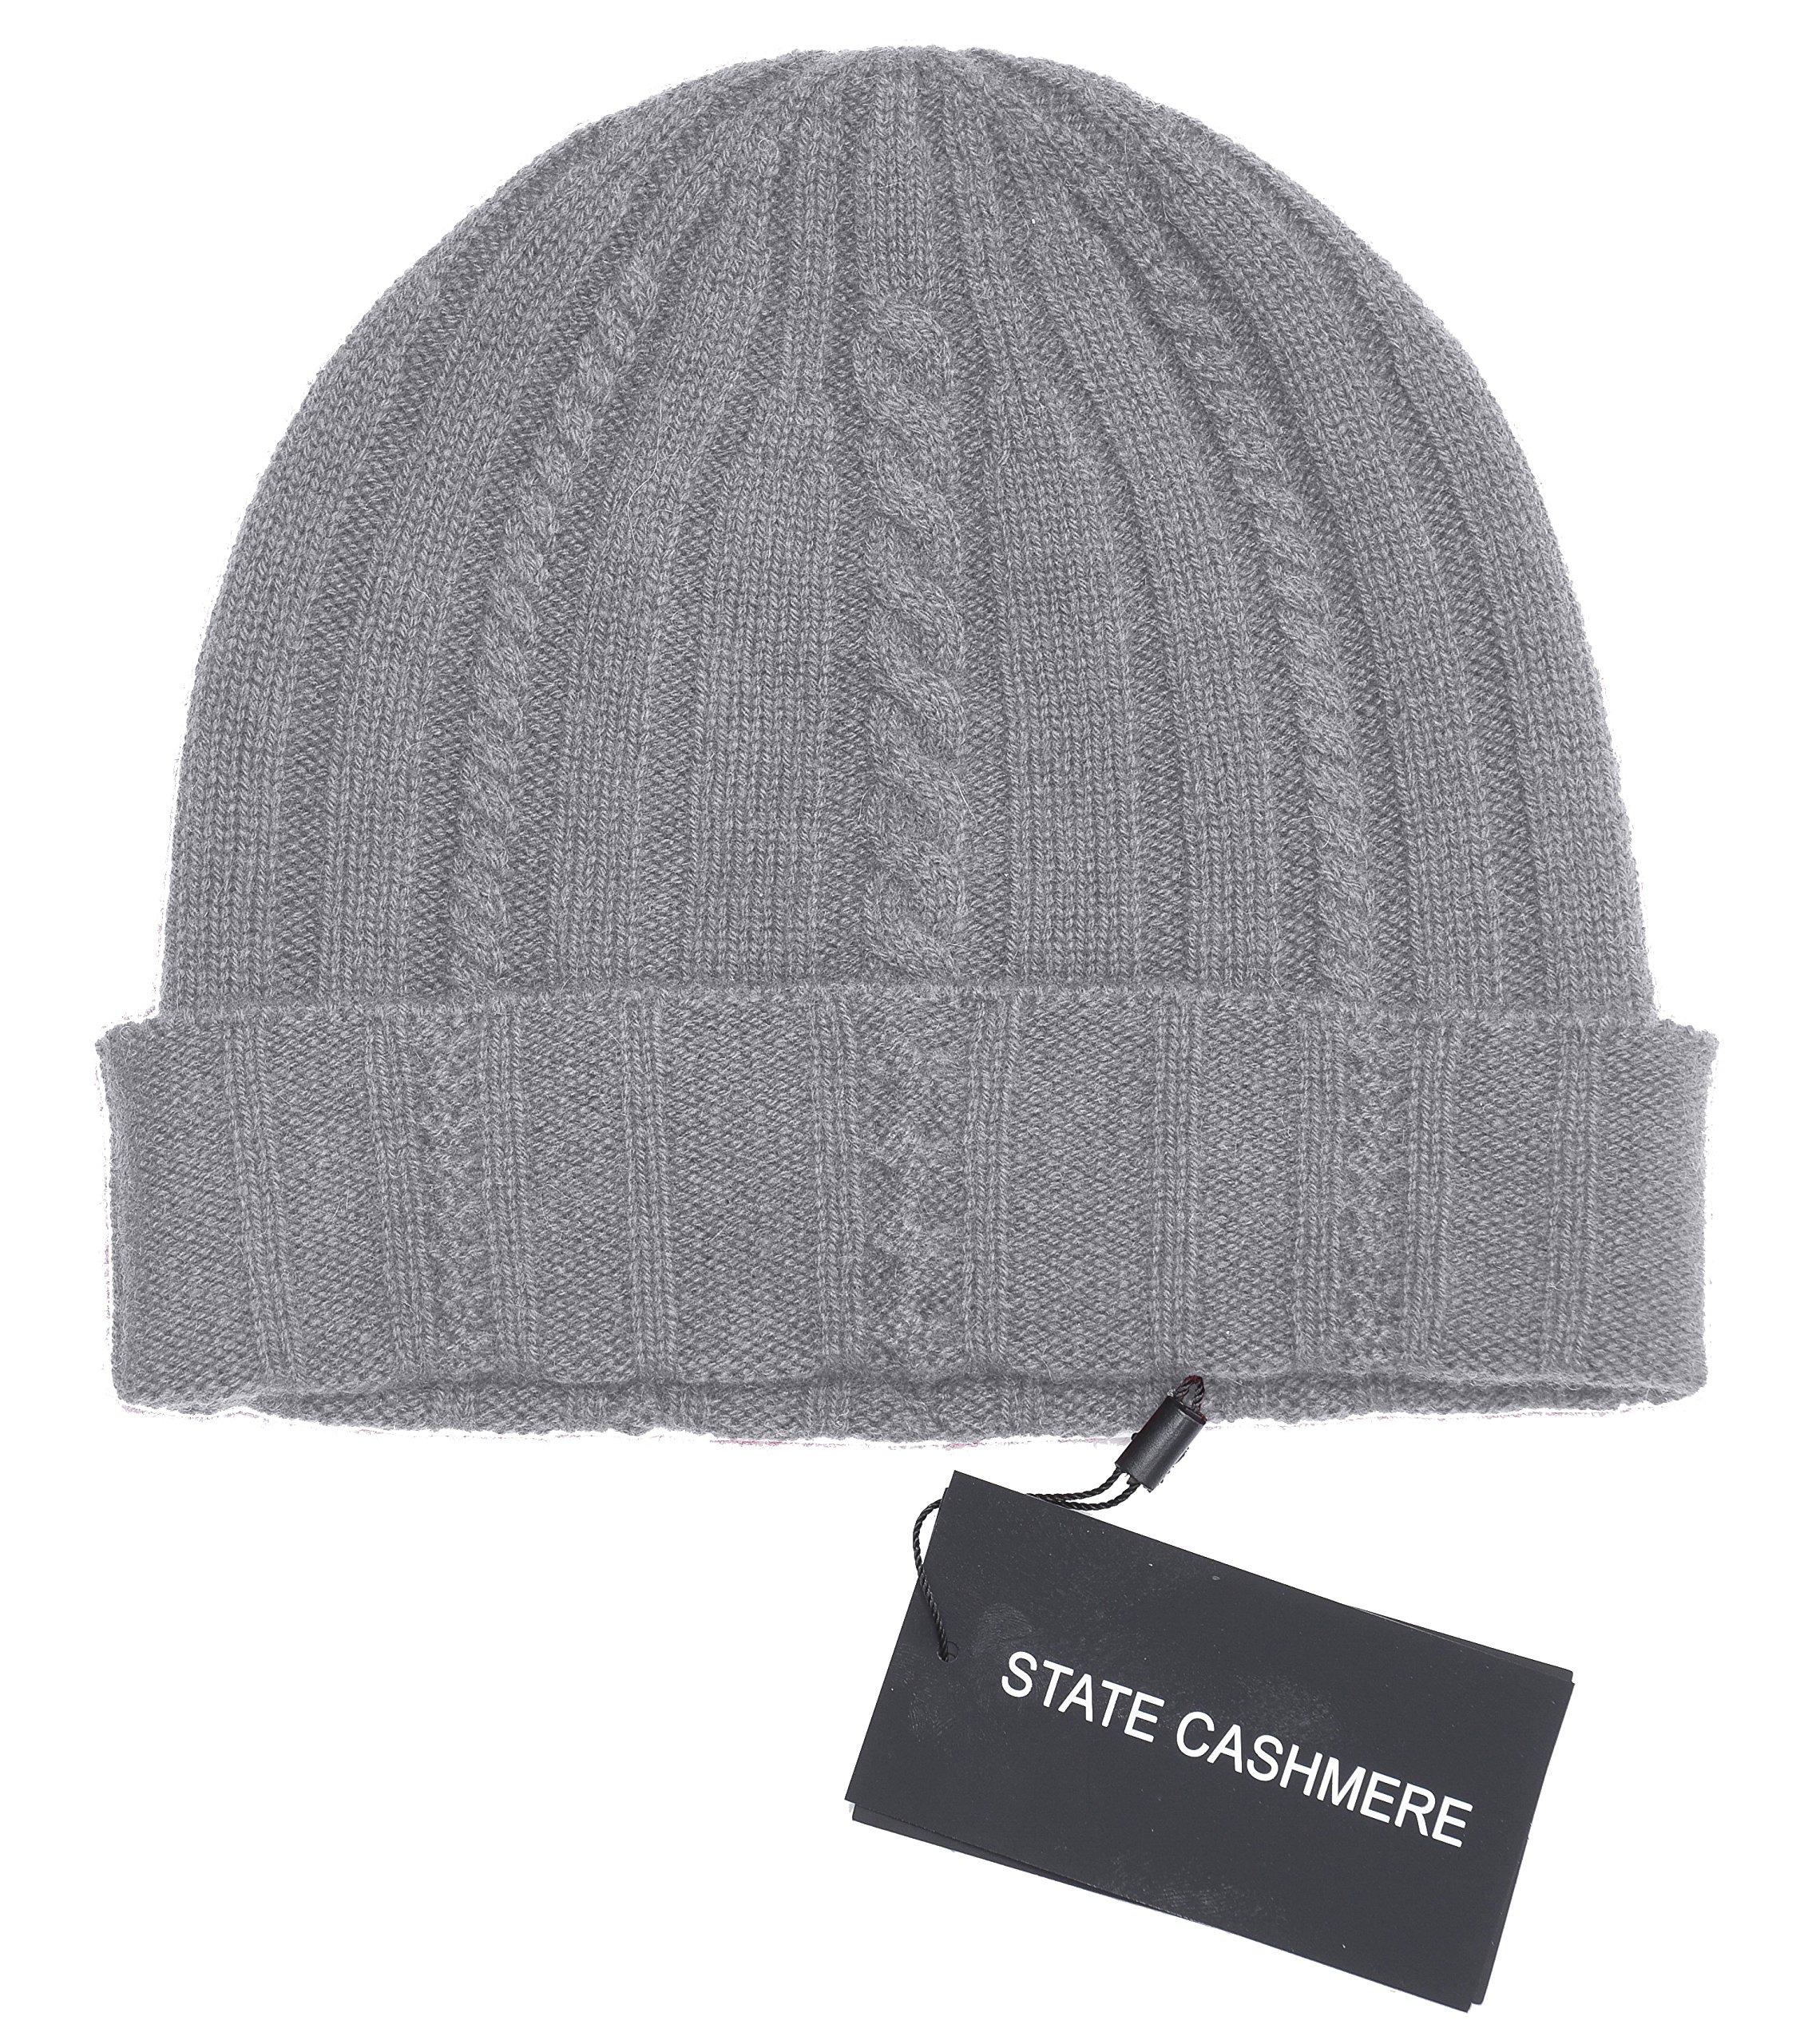 State Cashmere 100% Pure Cashmere Cable Knit Beanie Hat - Ultimate Soft,Warm and Cozy